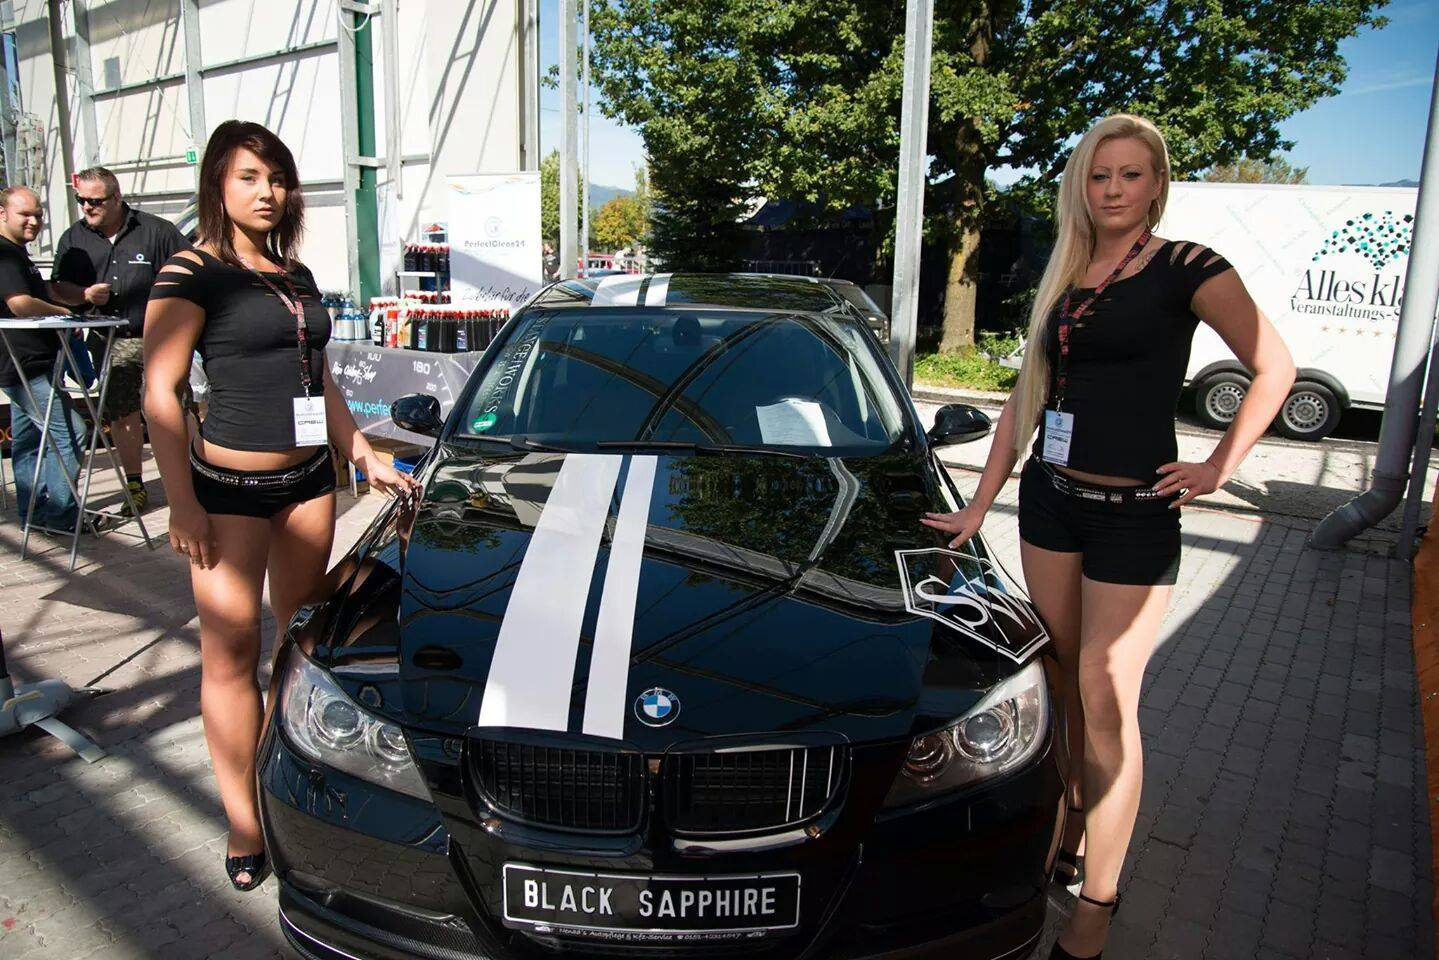 Black Sapphire sponsored by PerfectClean24